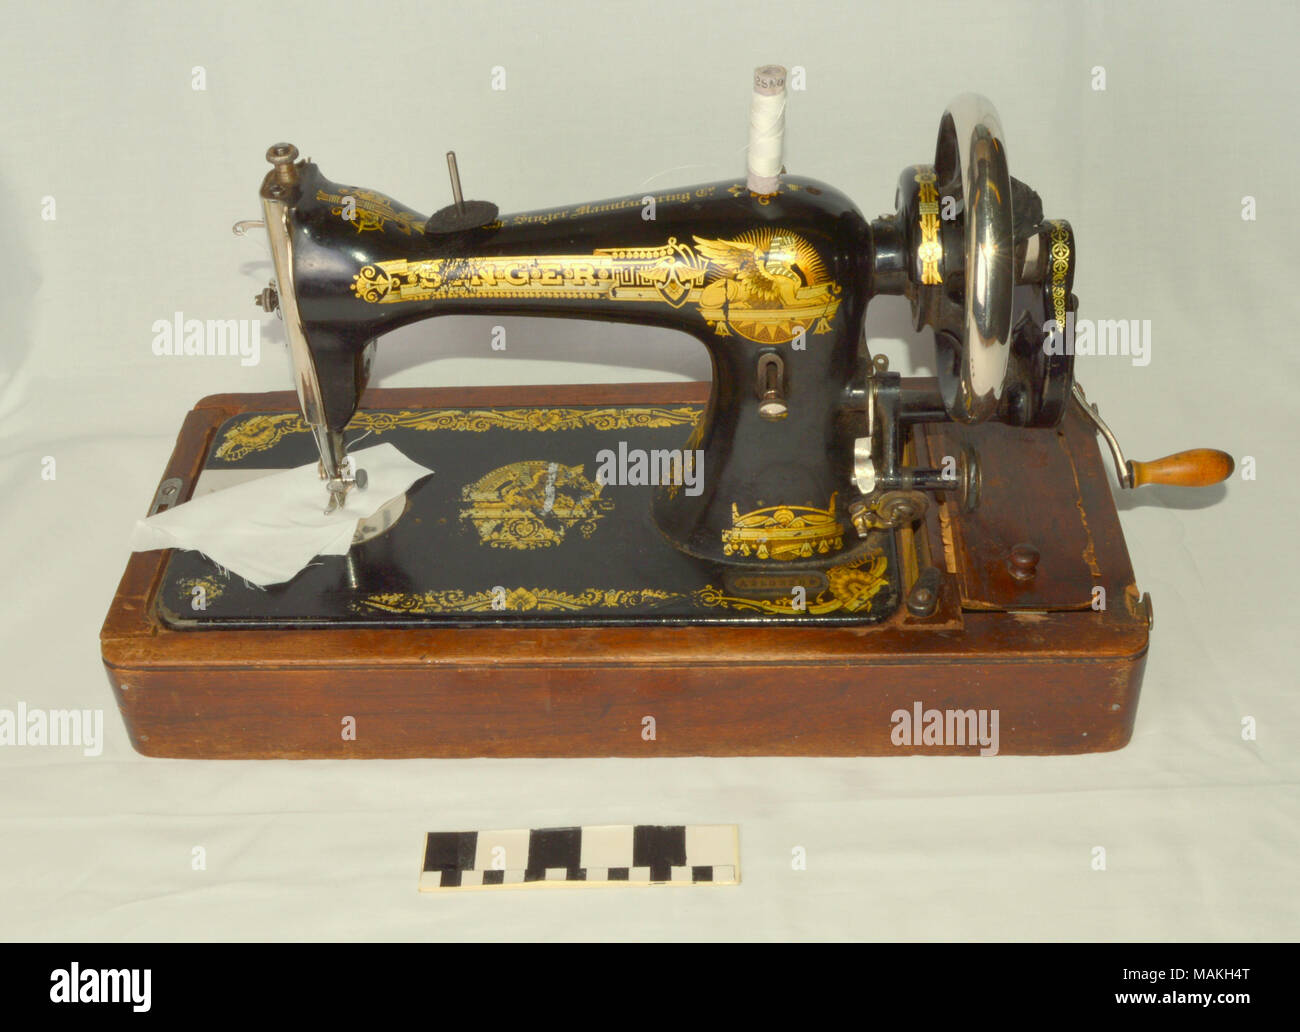 Russian Singer sewing machine and case, early 20th century